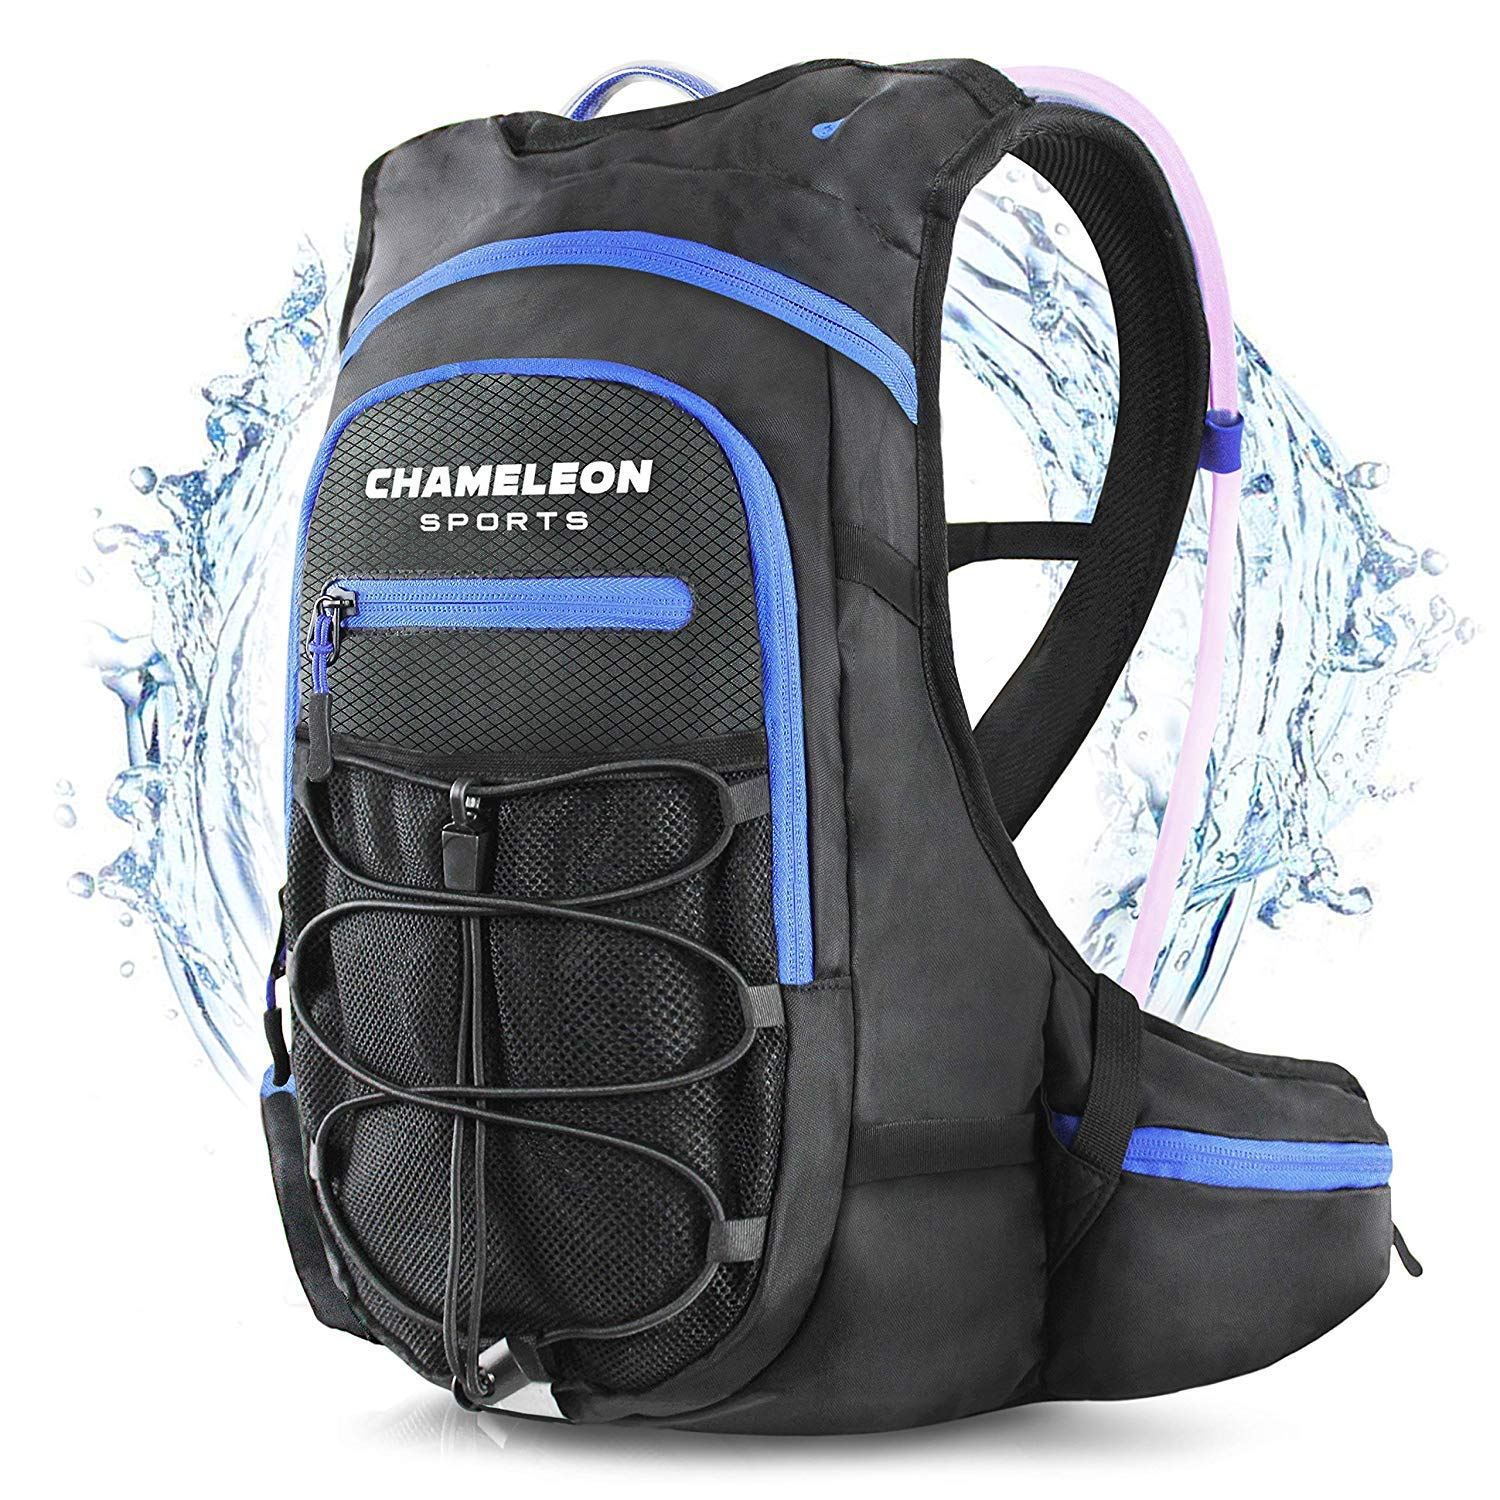 Chameleon Sports Hydration Backpack Lightweight Day Pack for Trail Running, Cycling, Biking, Hiking and Climbing - 2L Water Bladder Included